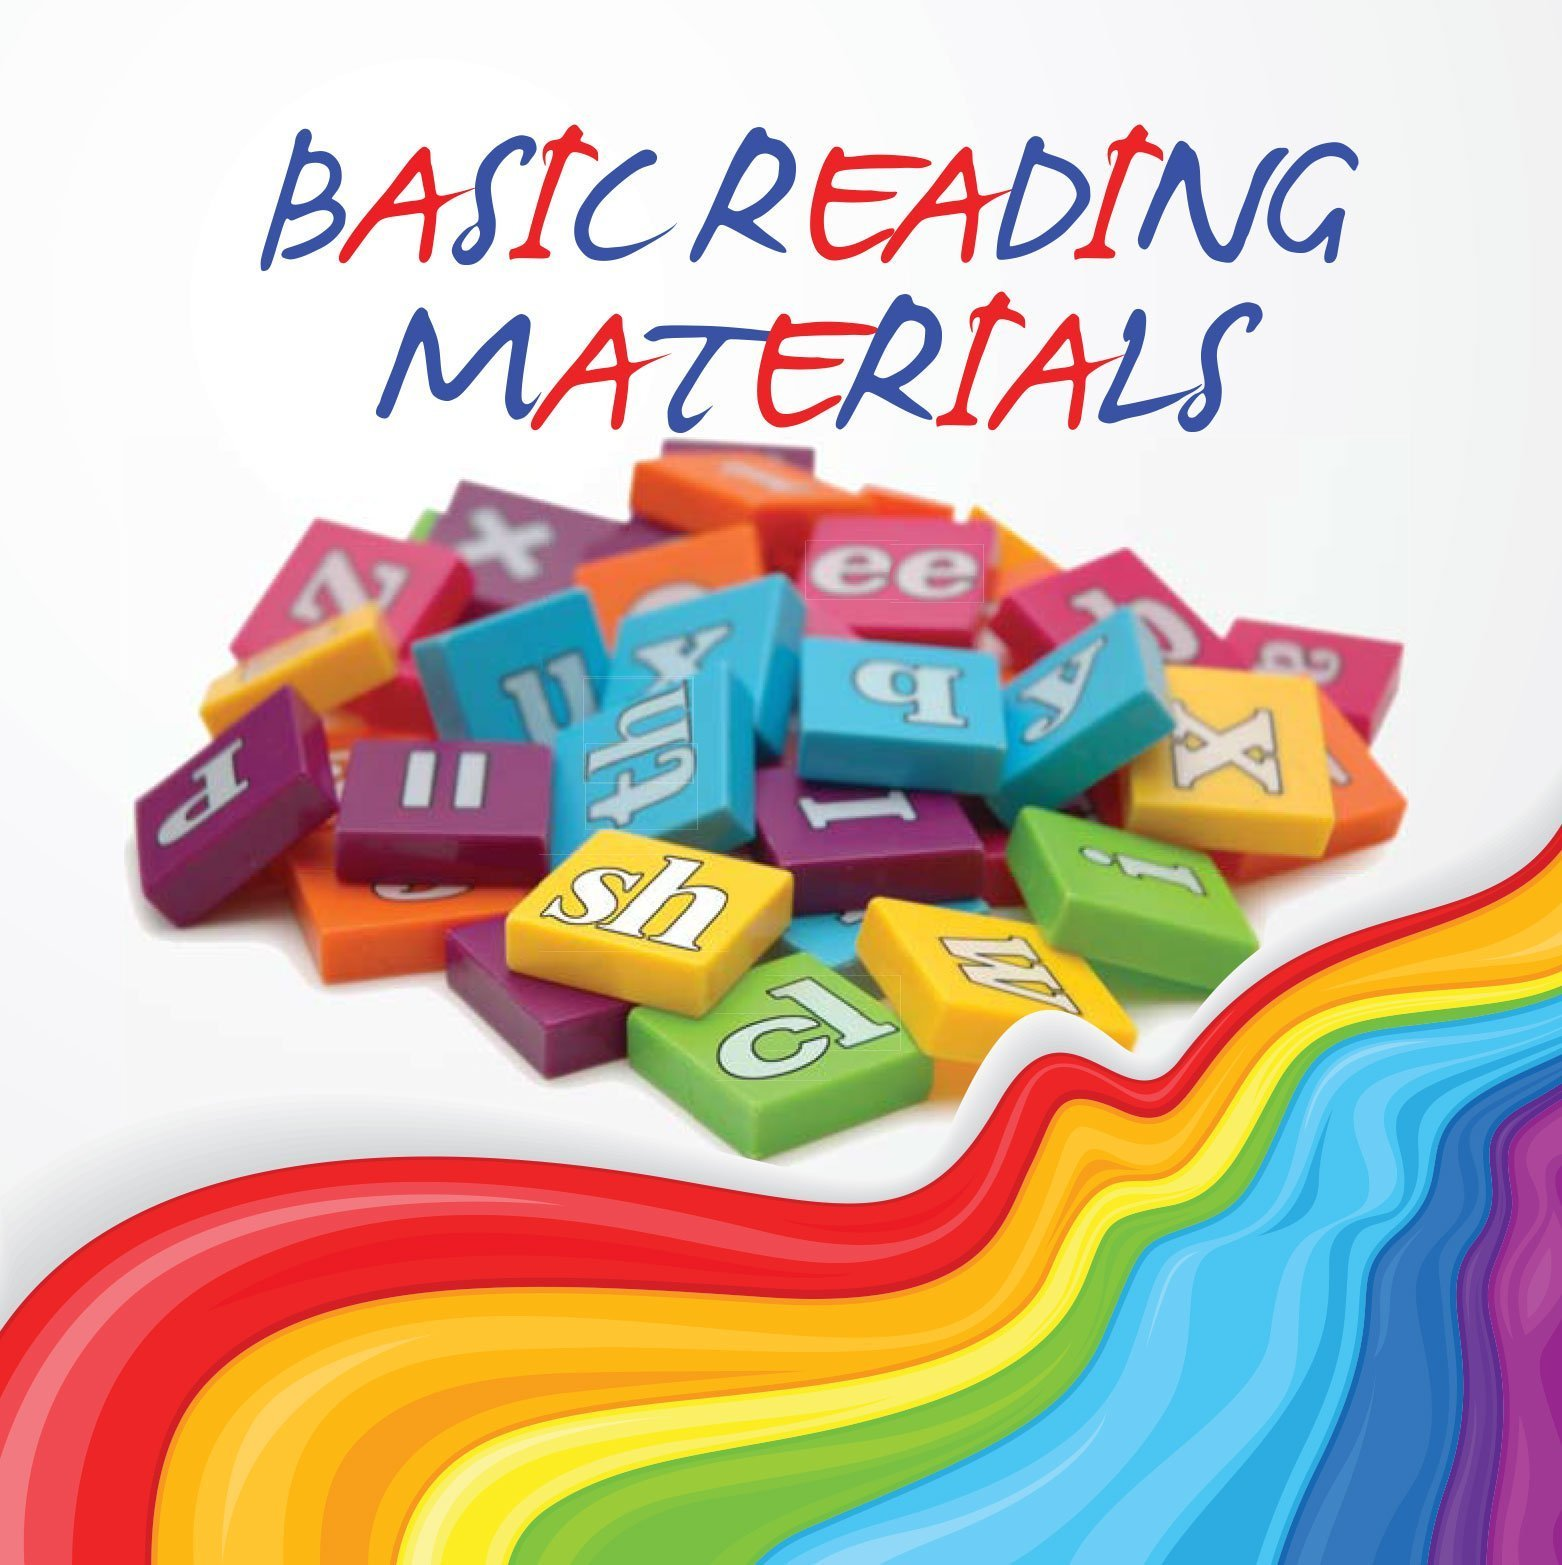 Basic Reading Materials CD Cover